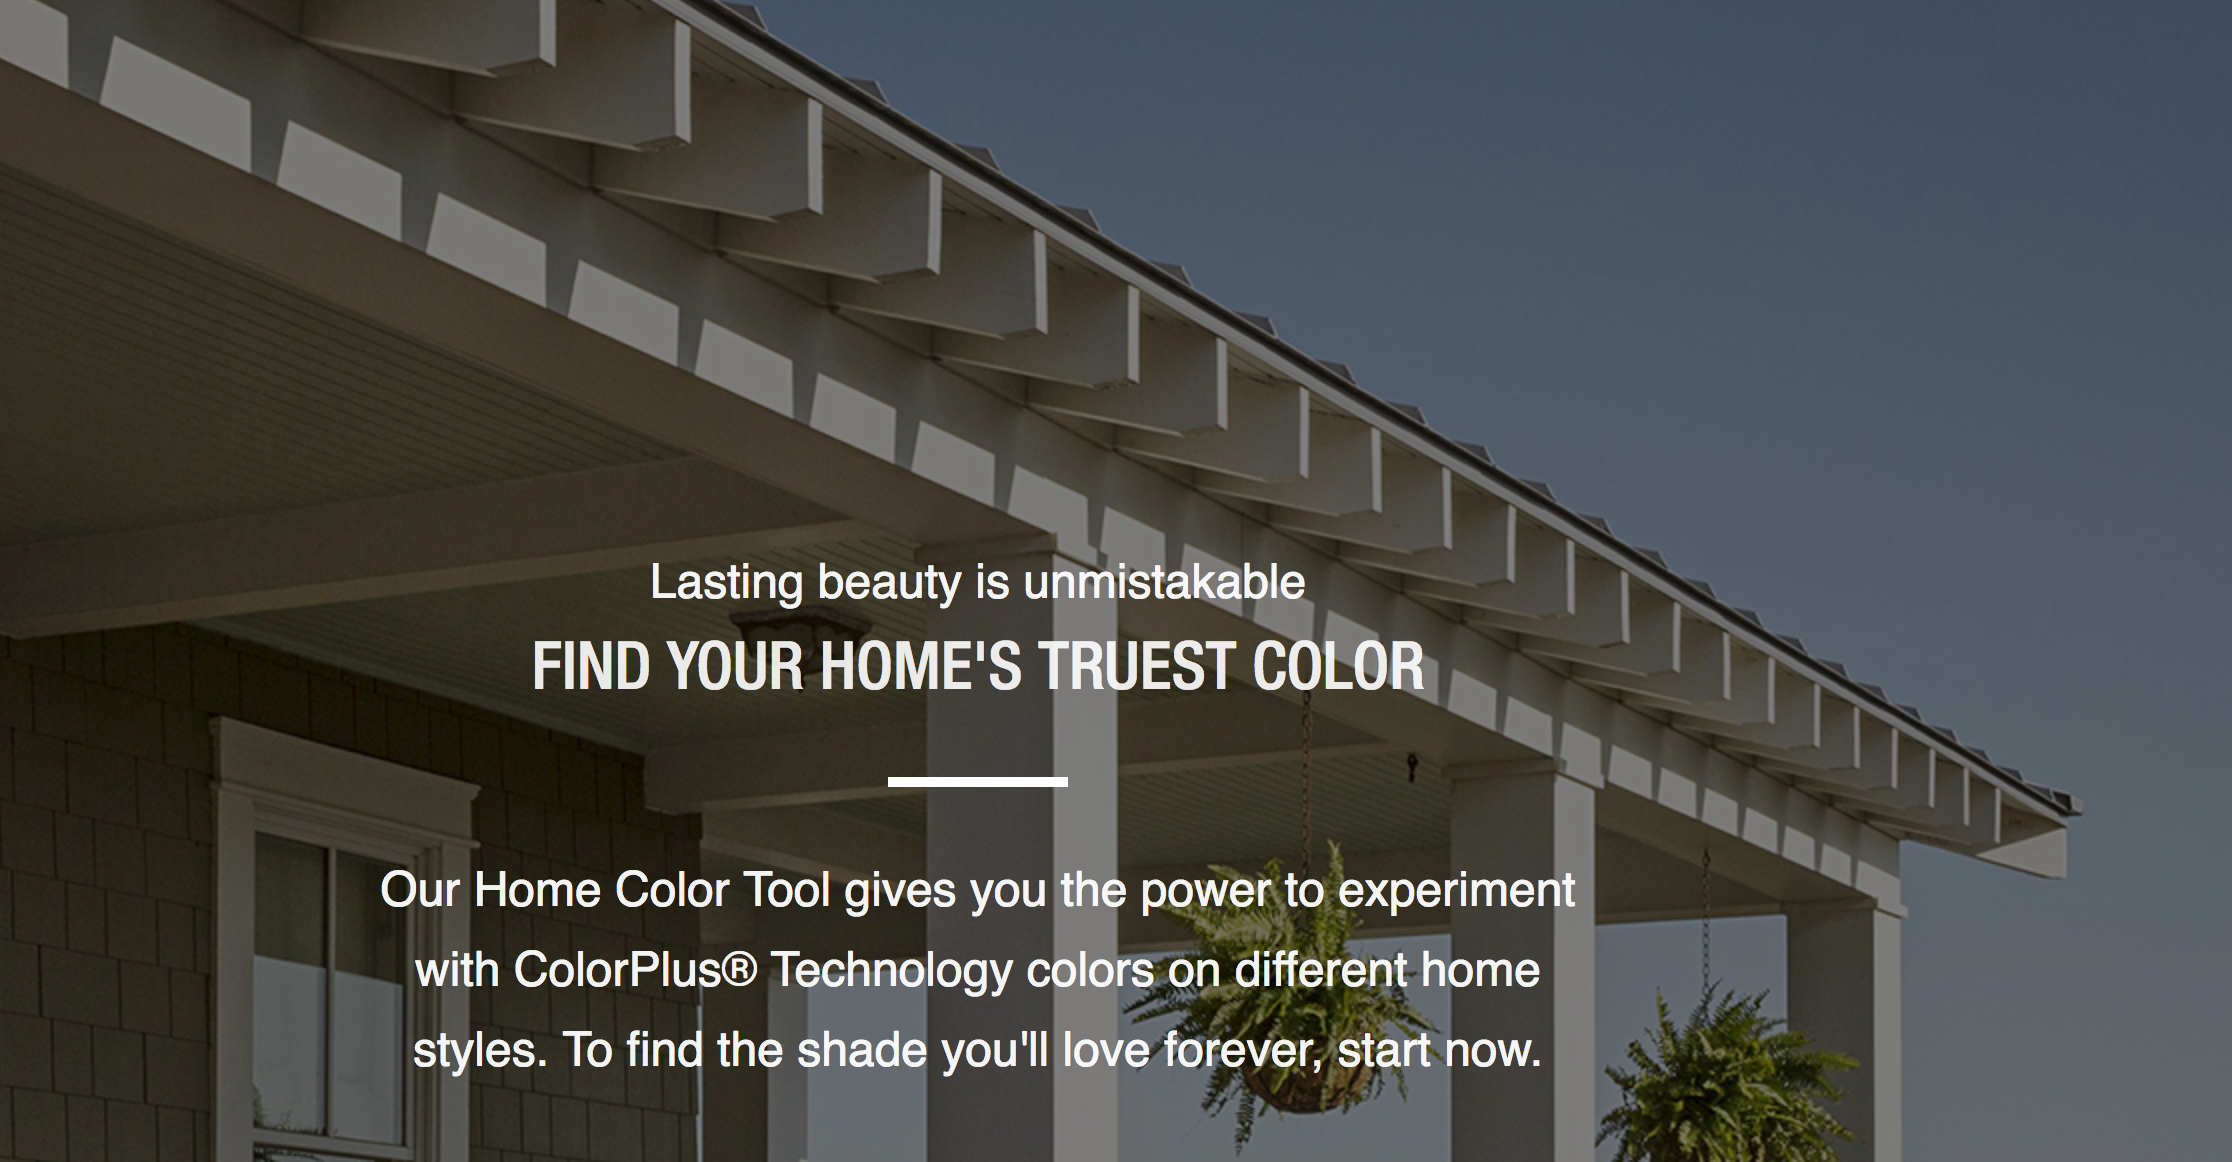 James Hardie Link to Exterior House Color Visualizer